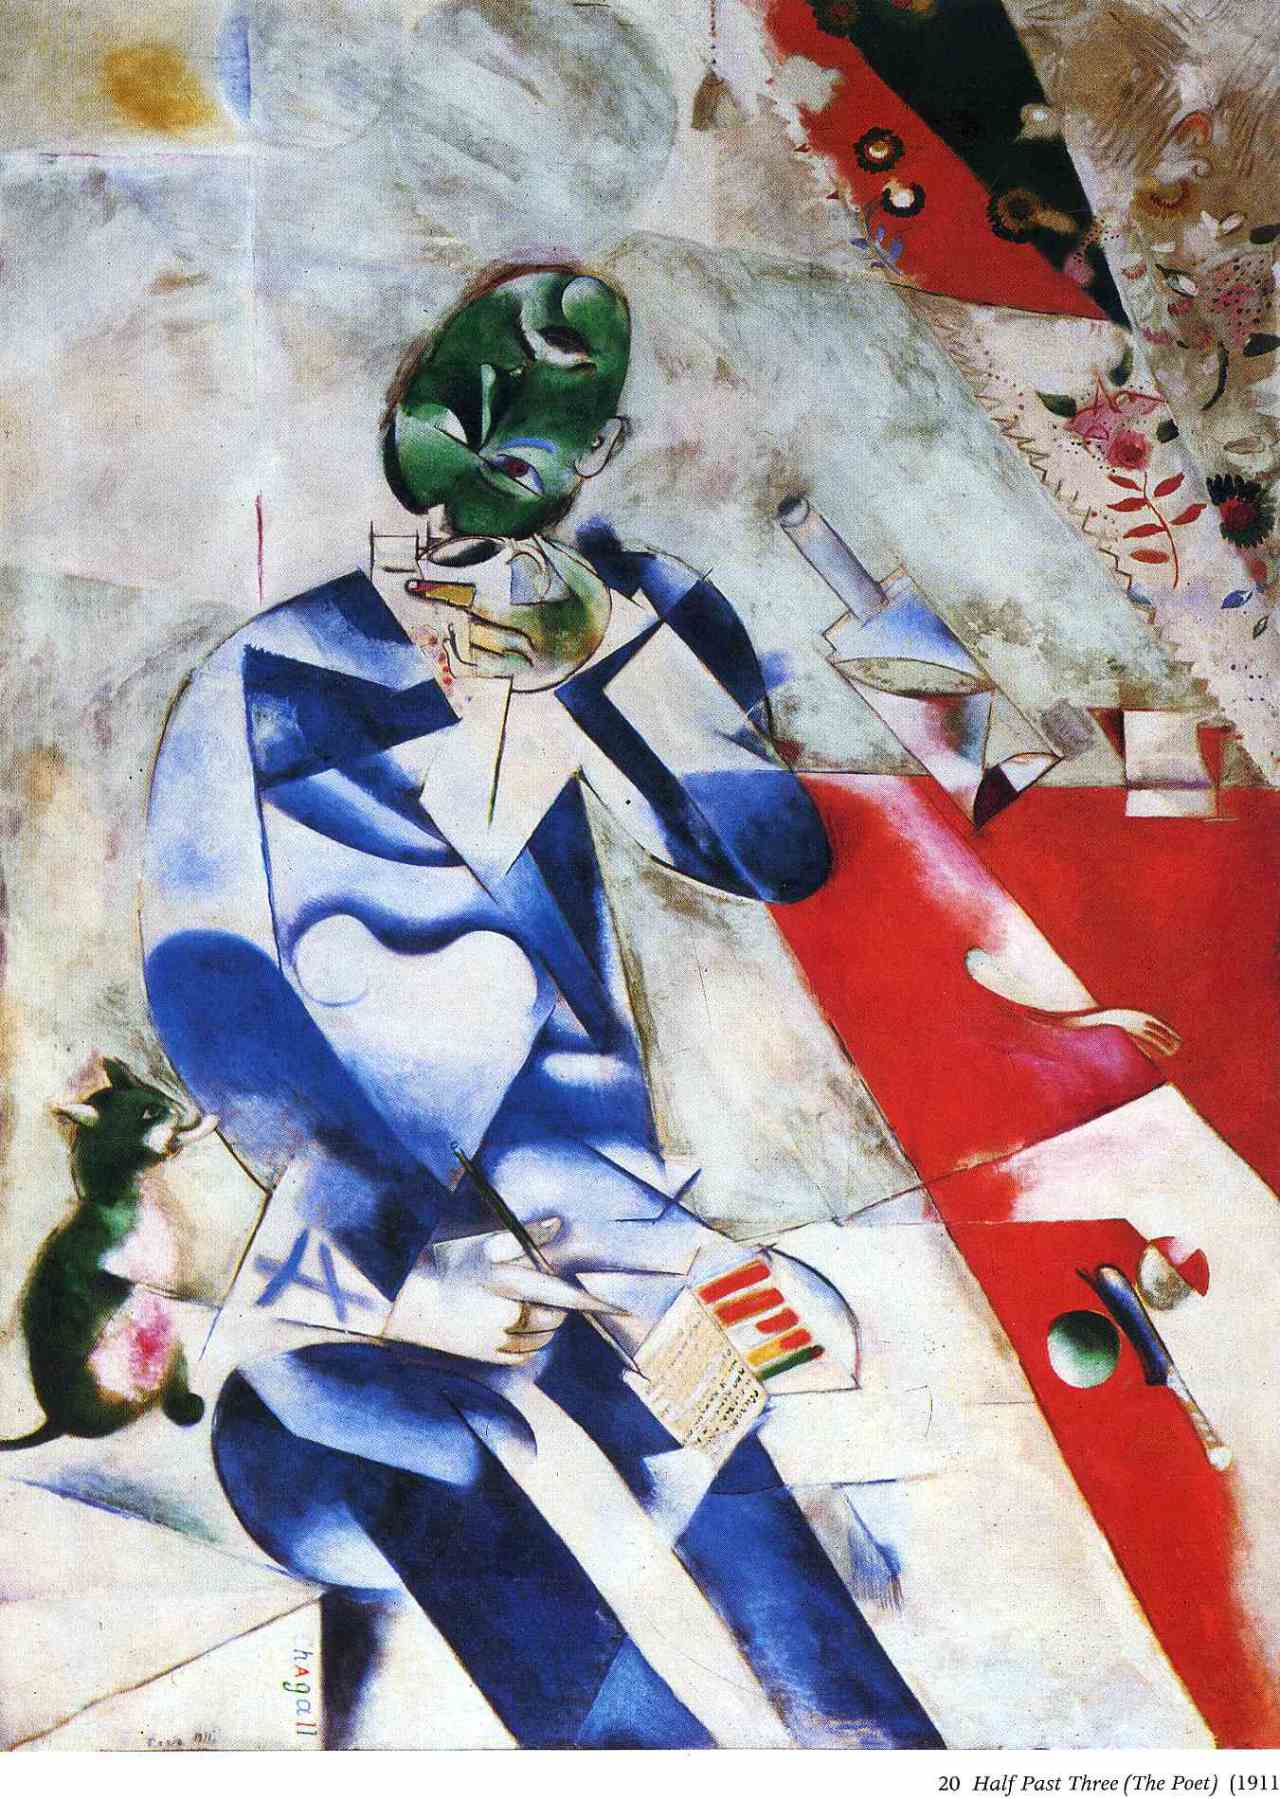 marc-chagall-the-poet-or-half-past-three-1912